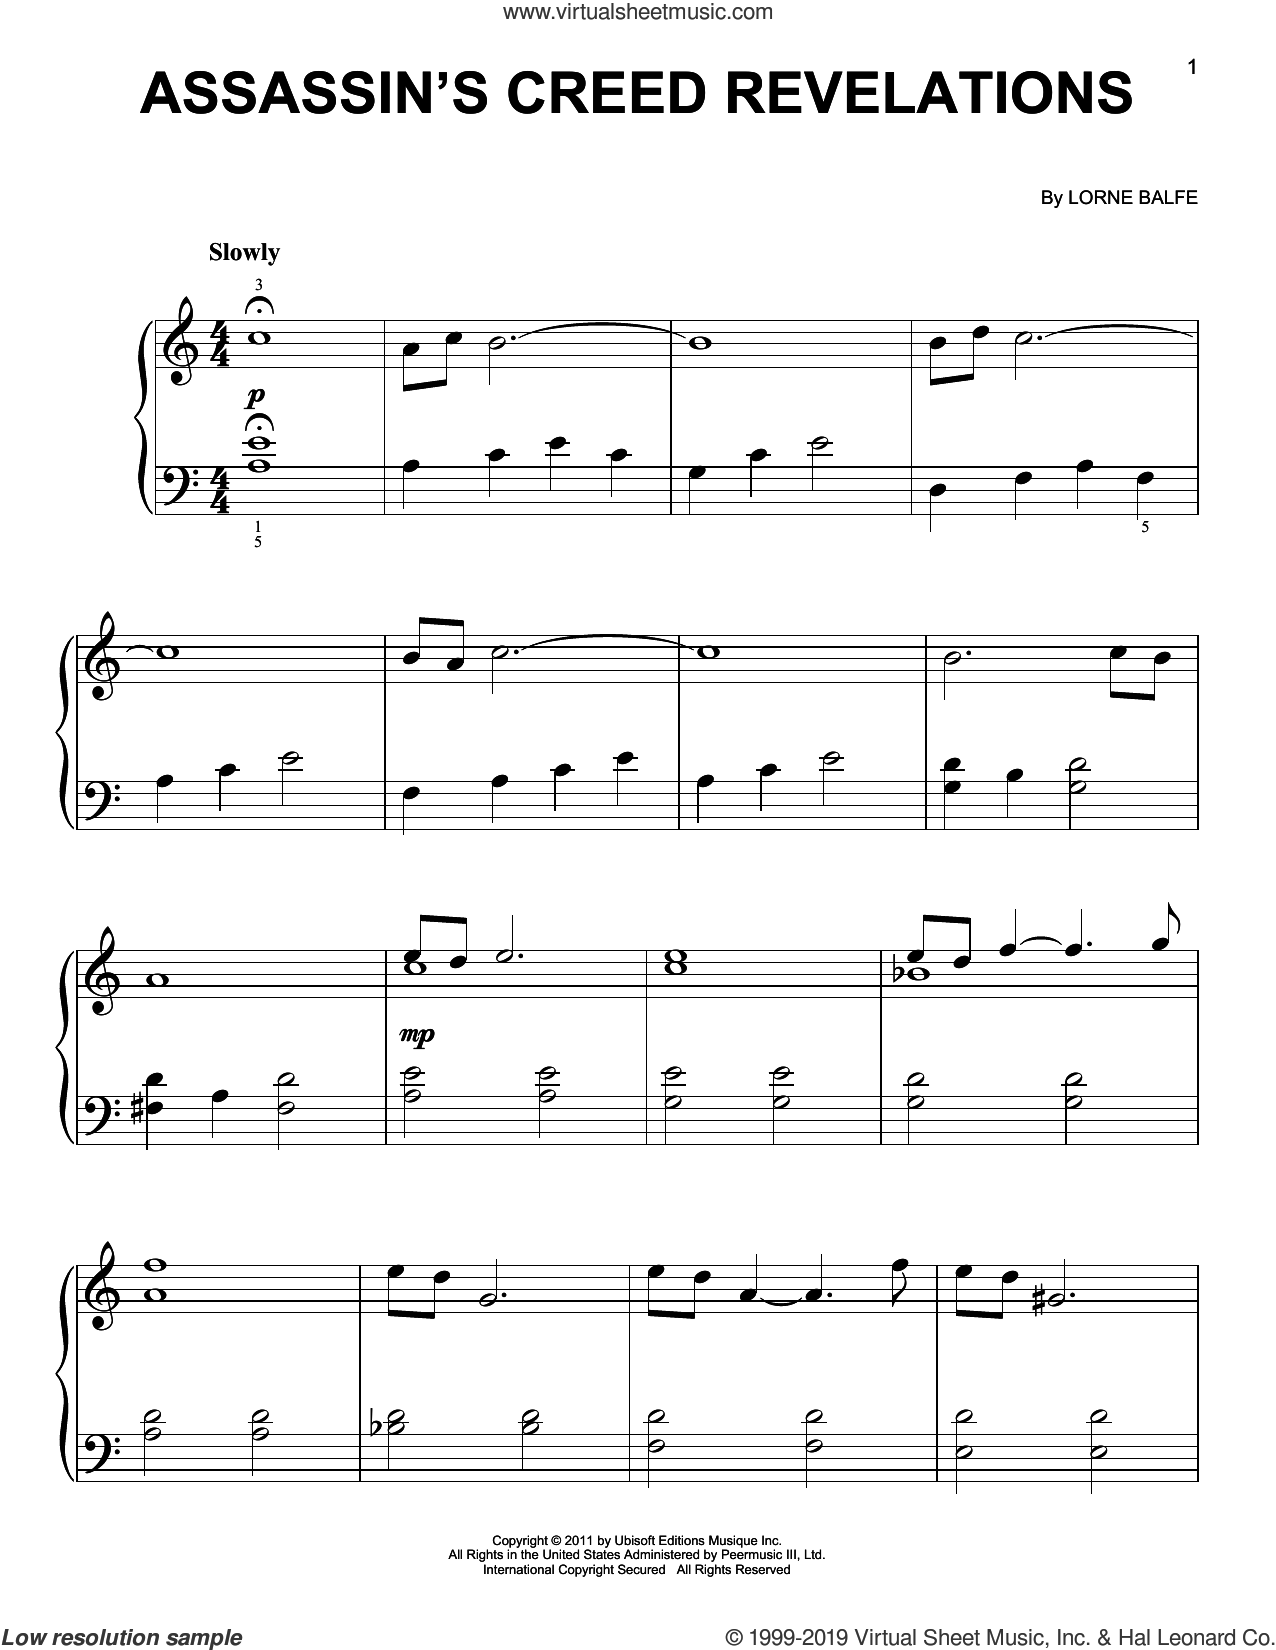 Assassin's Creed Revelations sheet music for piano solo by Lorne Balfe, easy skill level